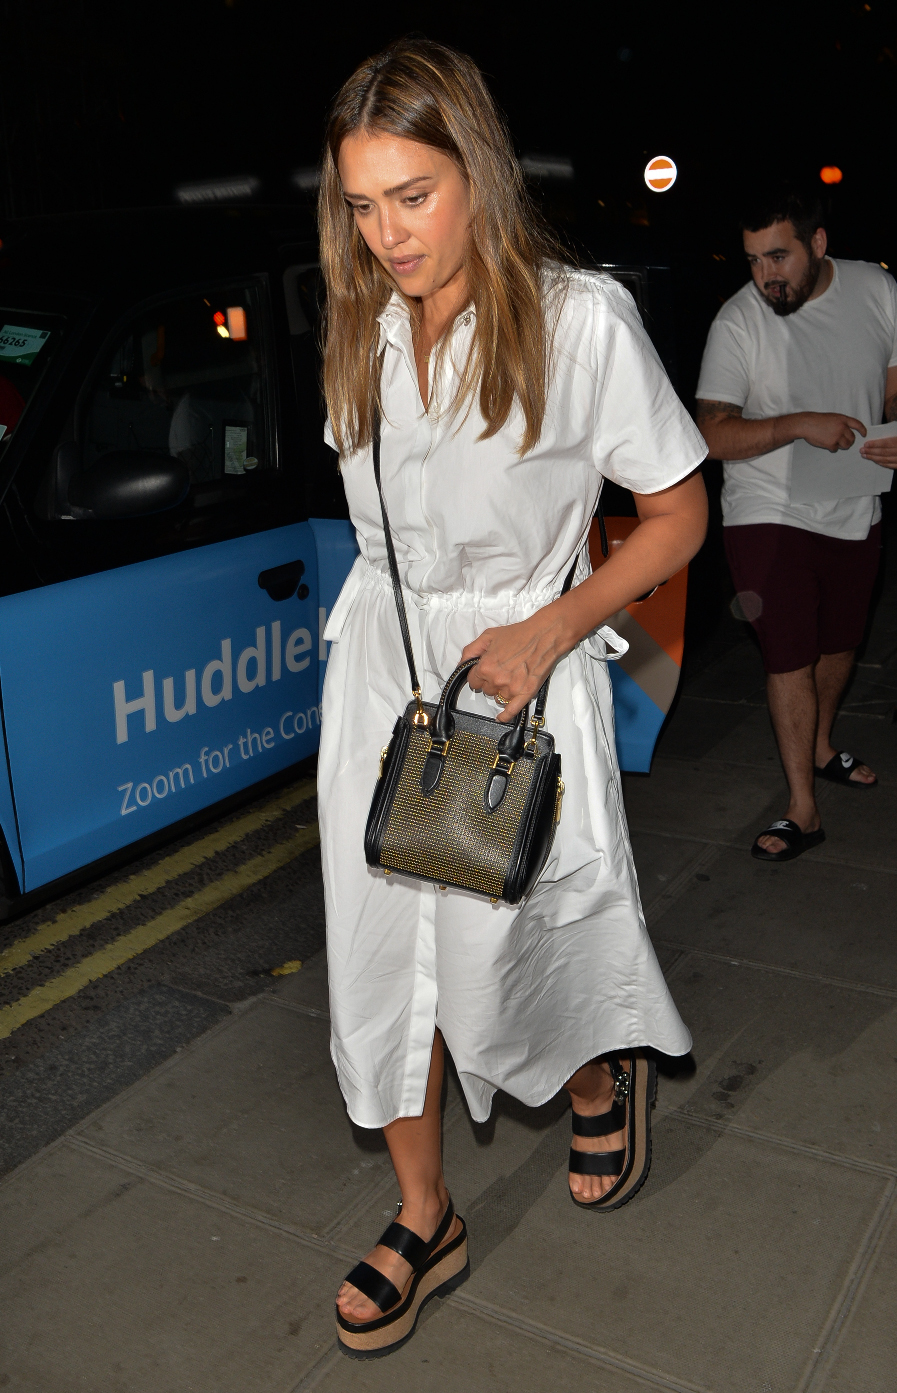 Jessica Alba seen leaving Chiltern Firehouse  Pictured: Jessica Alba Ref: SPL5006542 260618 NON-EXCLUSIVE Picture by: PALACE LEE / SplashNews.com  Splash News and Pictures Los Angeles: 310-821-2666 New York: 212-619-2666 London: 0207 644 7656 Milan: +39 02 4399 8577 photodesk@splashnews.com  World Rights